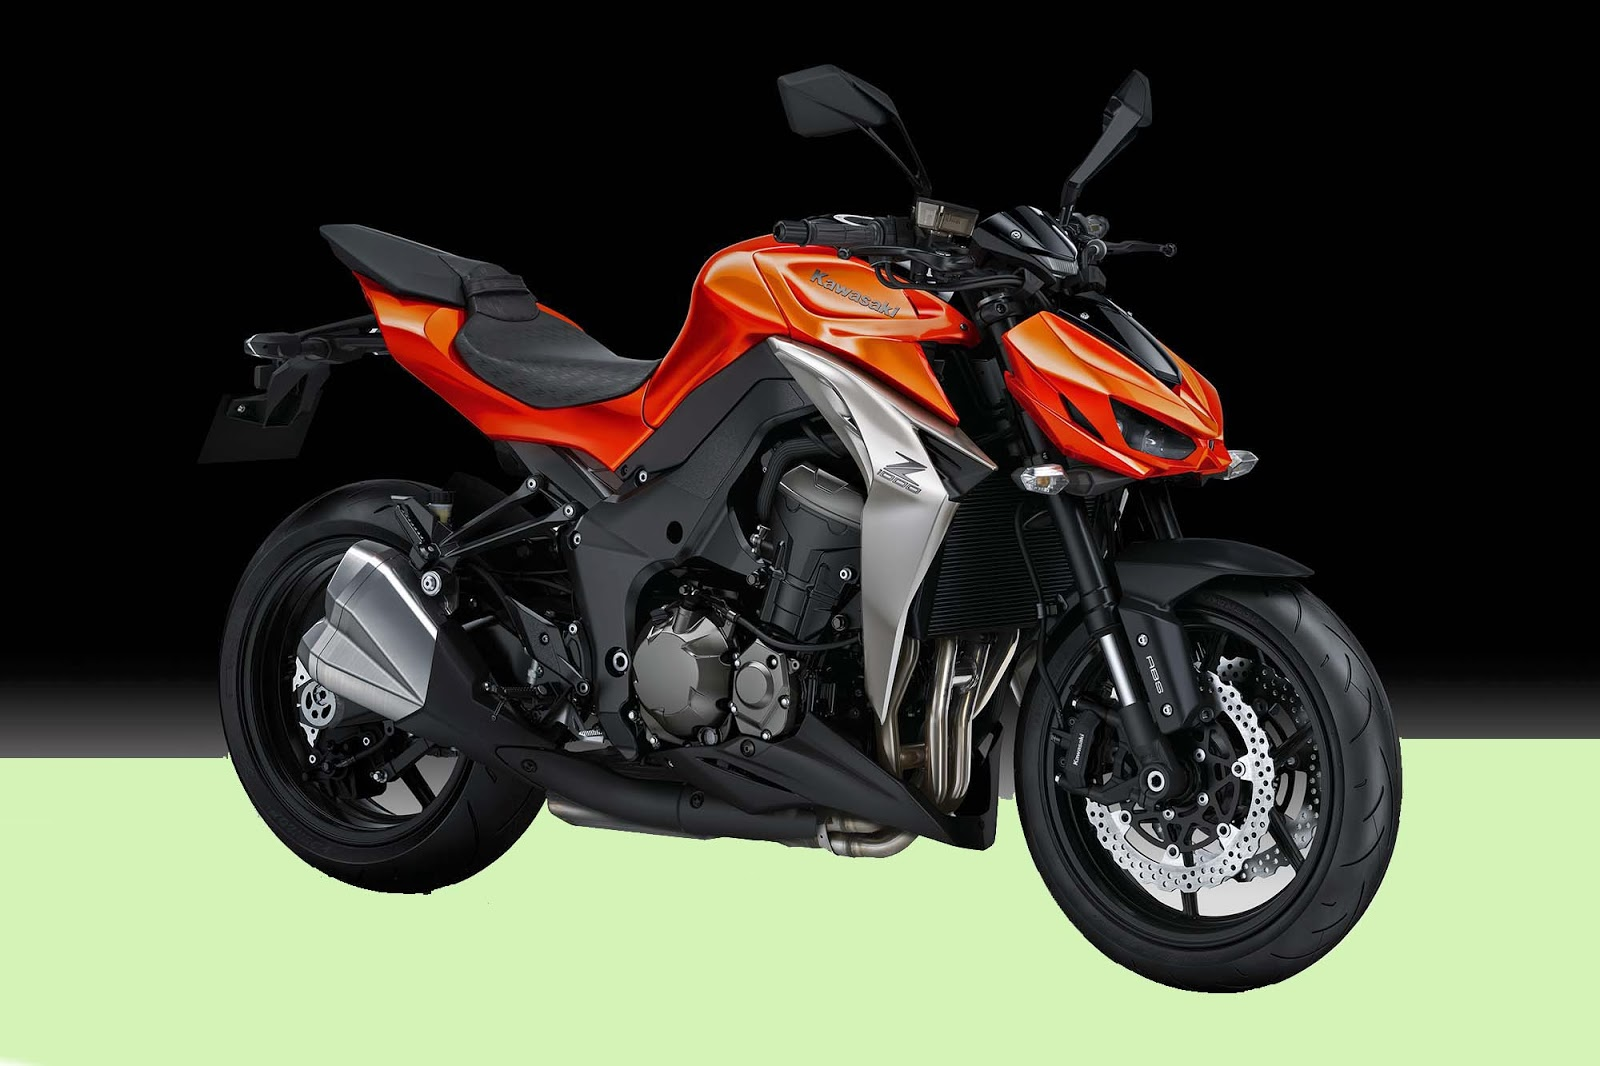 Kawasaki Z1000 india HD pictures  Wallpapers  Stills  Images